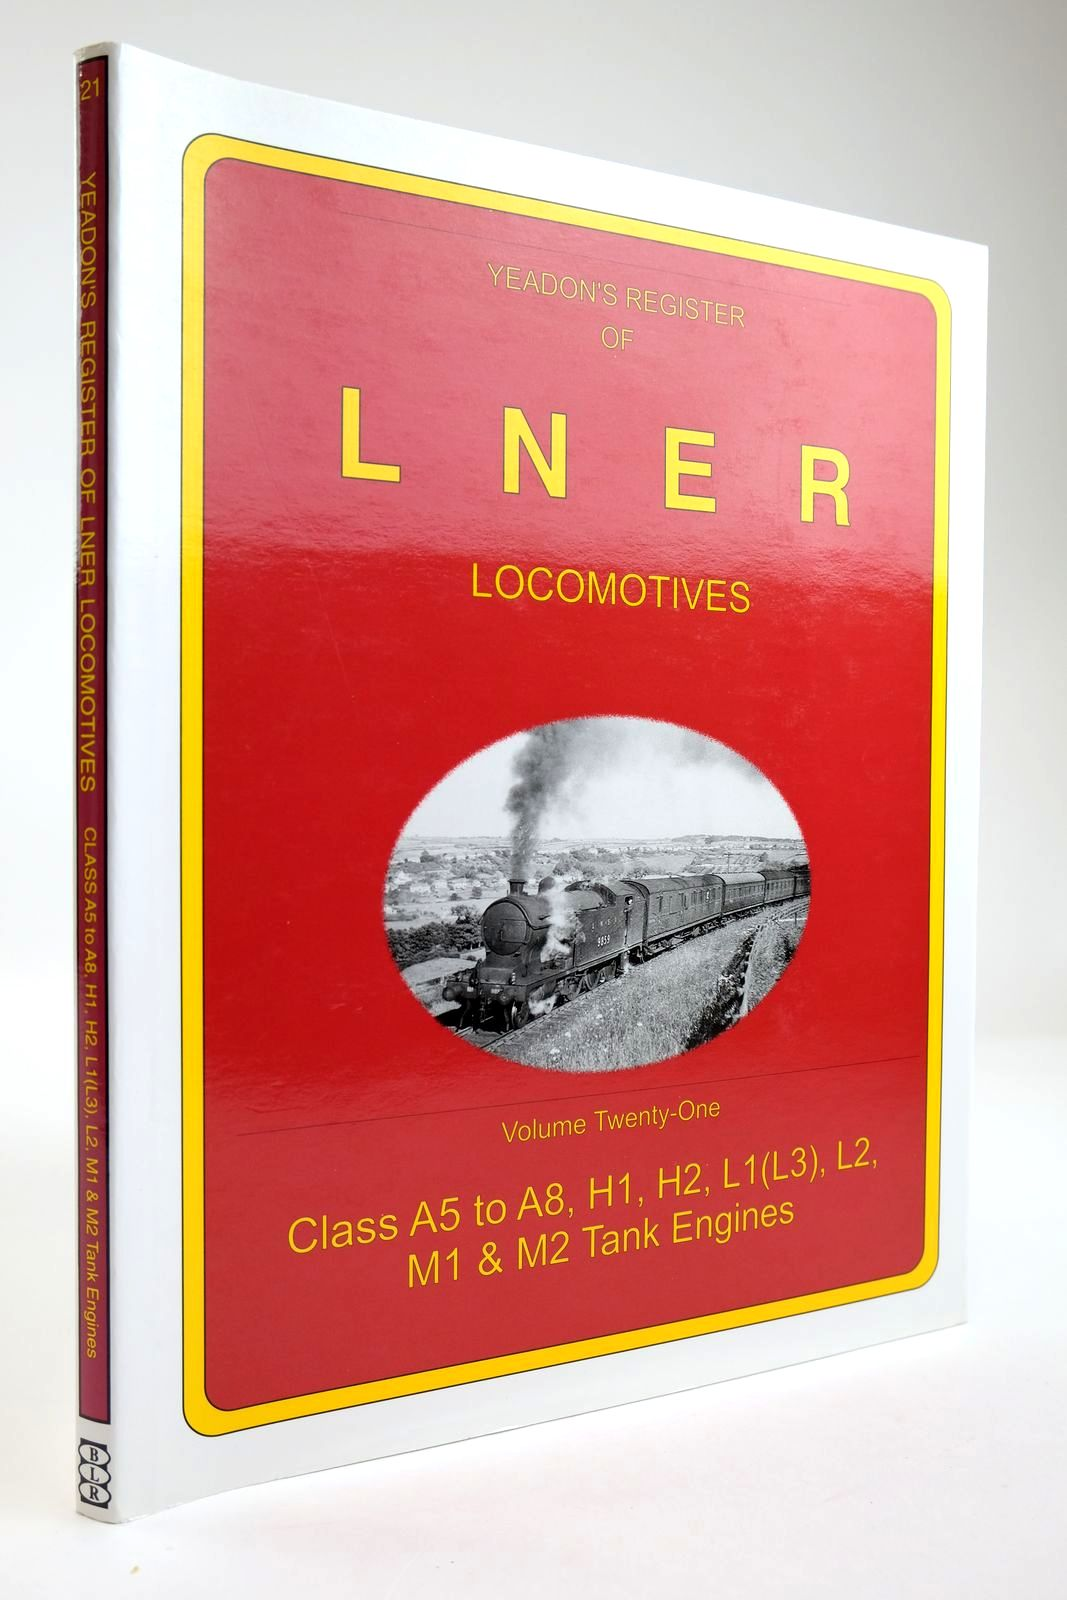 Photo of YEADON'S REGISTER OF LNER LOCOMOTIVES VOLUME TWENTY-ONE written by Yeadon, W.B. published by Booklaw Railbus (STOCK CODE: 2133577)  for sale by Stella & Rose's Books